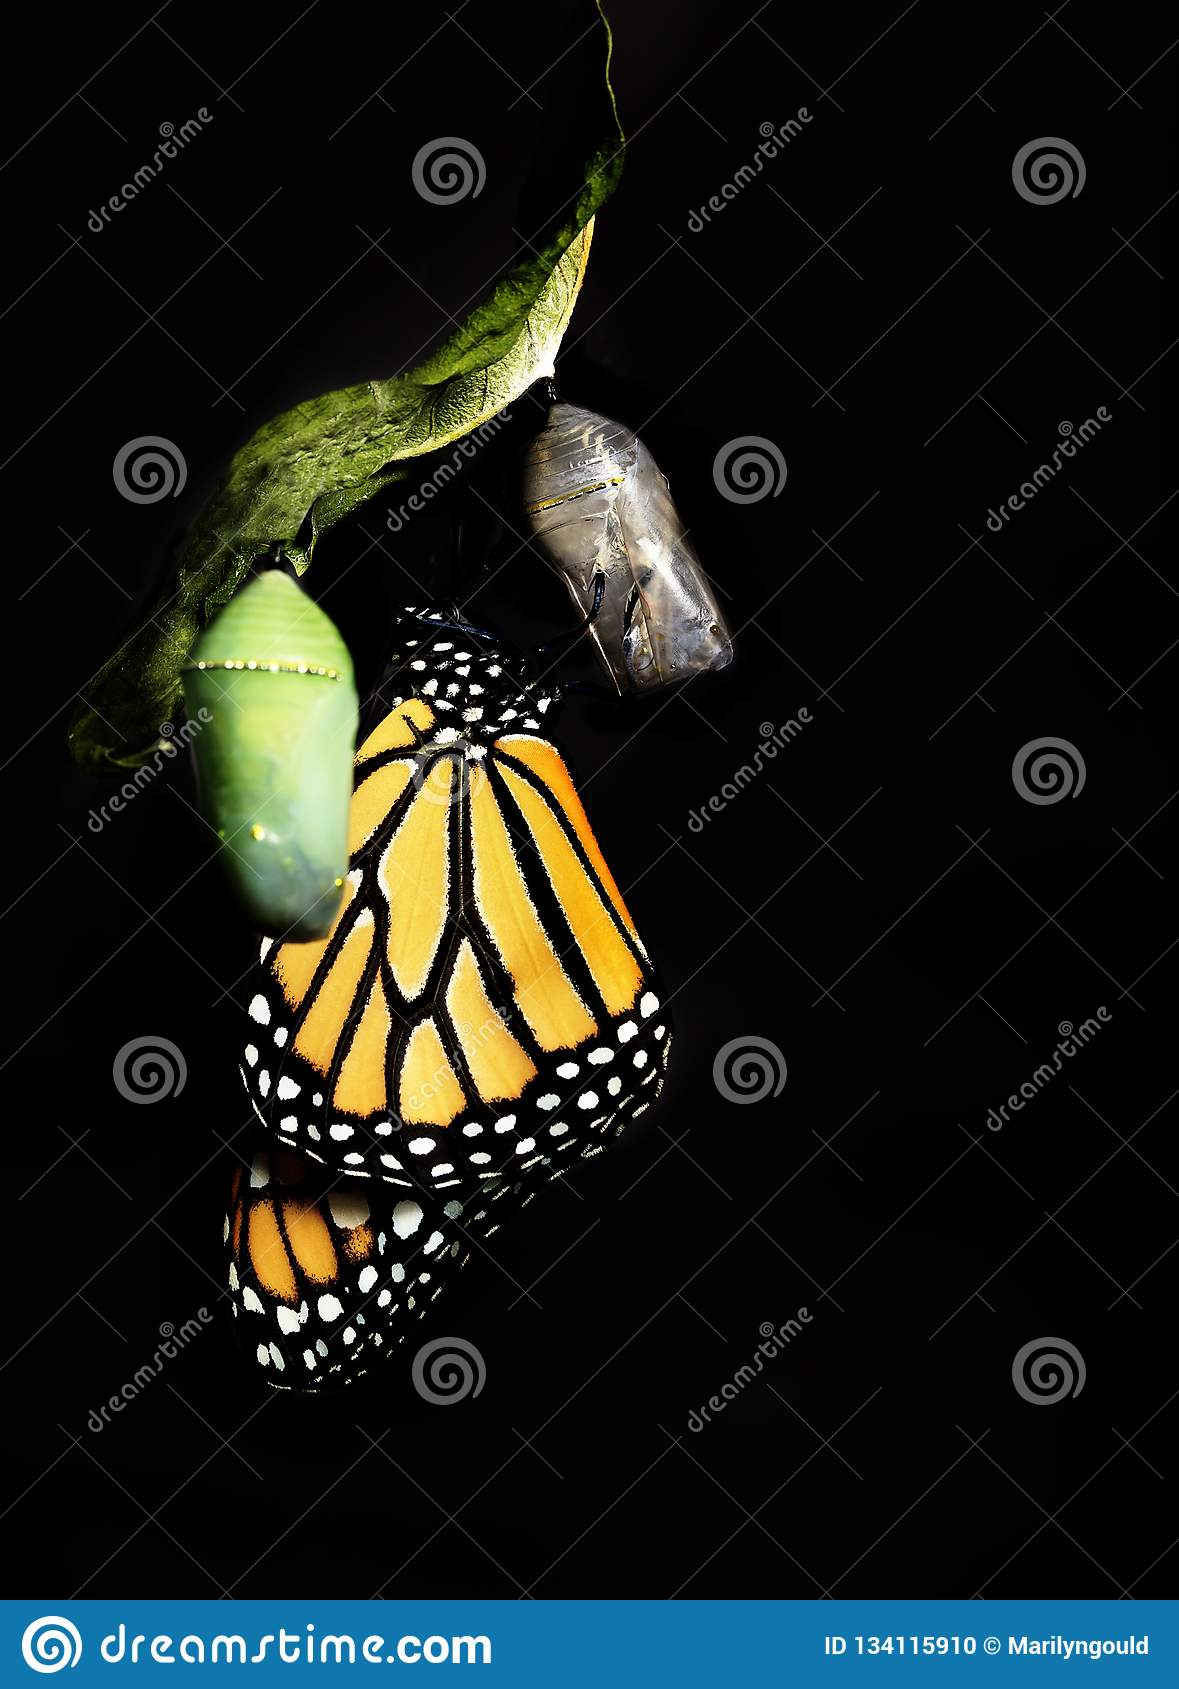 Monarch Butterfly Clinging to Empty Chrysalis